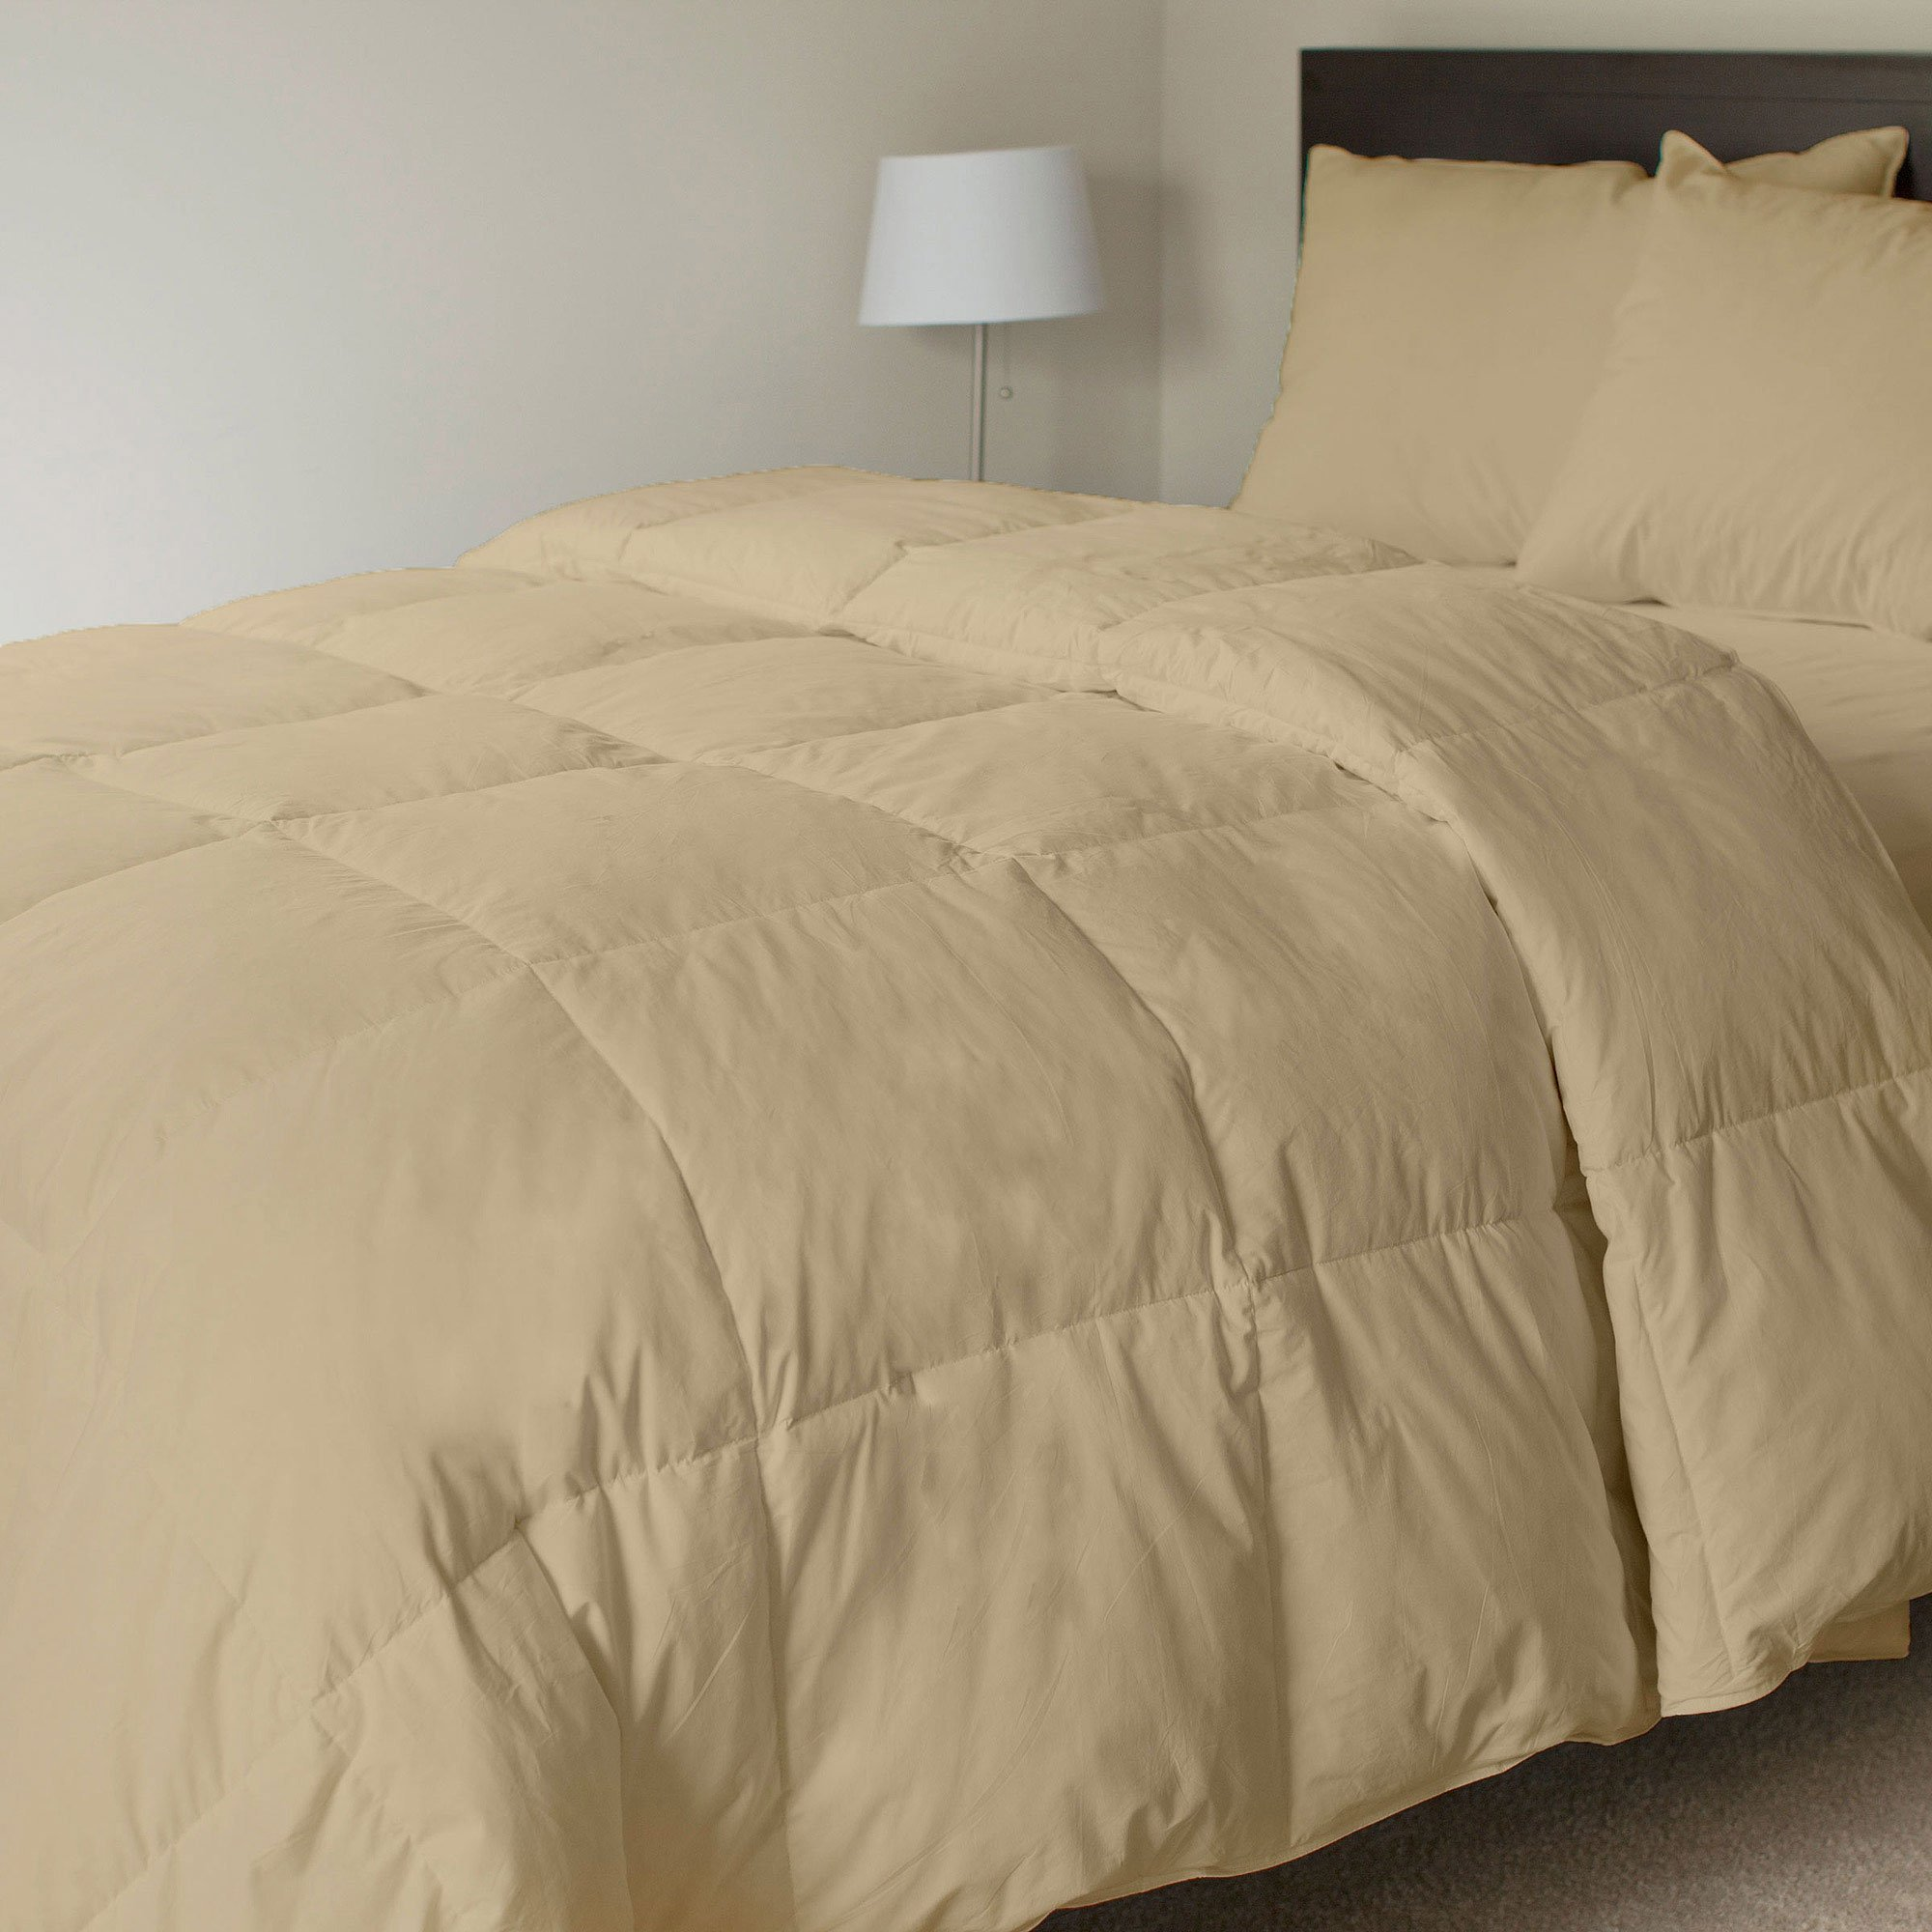 Luxuroius Premium Quality Comforter by Linen Shoppe 500 GSM HEAVEN LIKE FEEL All Season Warm Fluffy Ultra-Soft and Smooth,100% Egyptian cotton and Long Staple Comes with Italian Finish(King-Taupe)